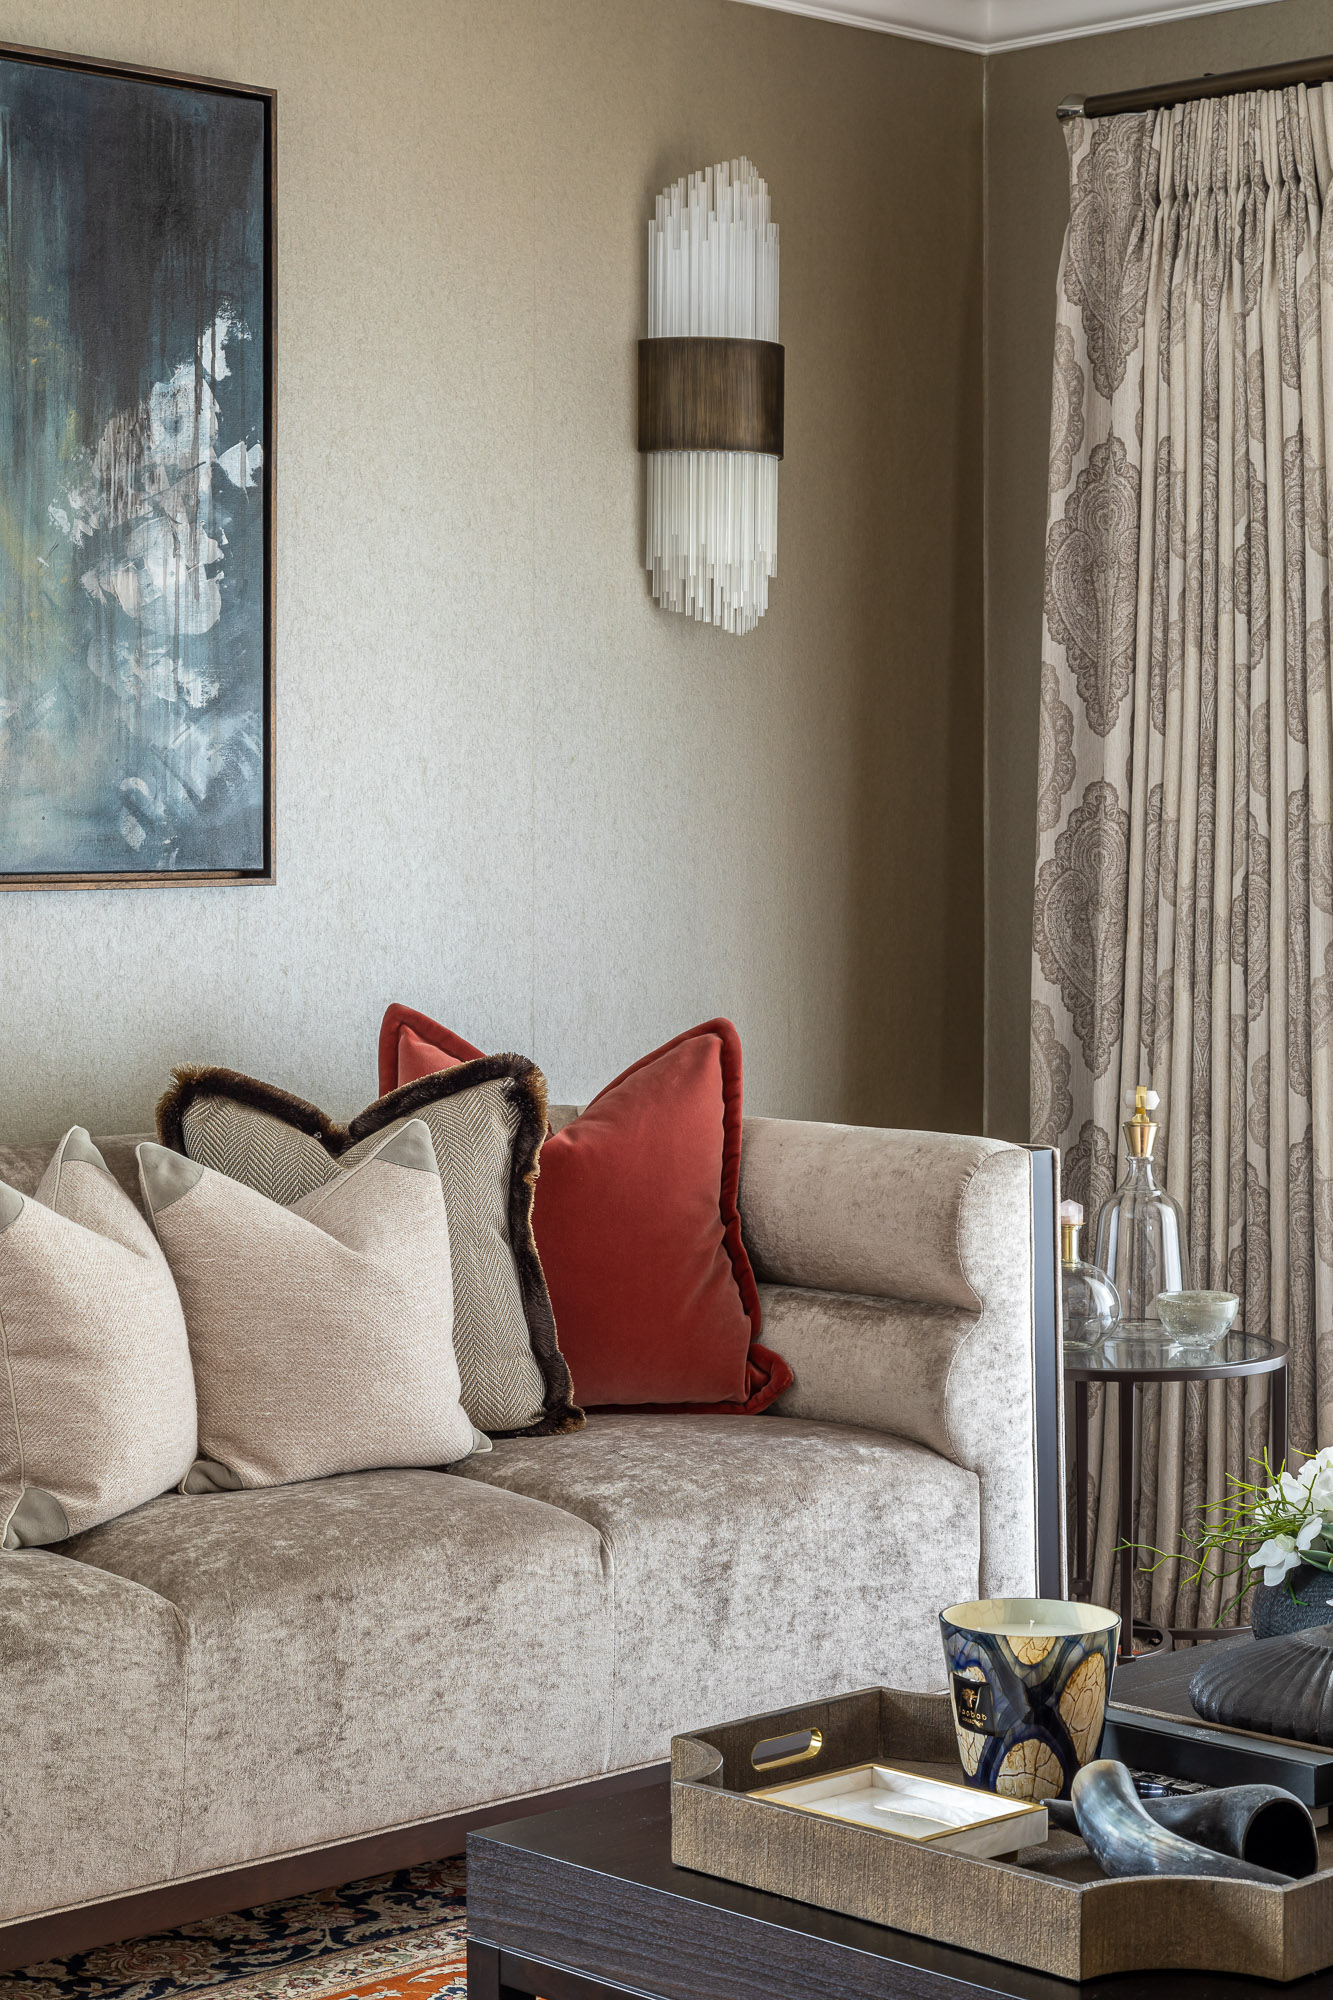 jonathan bond, interior photographer, cushions on settee in living room near curtains, esher, surrey